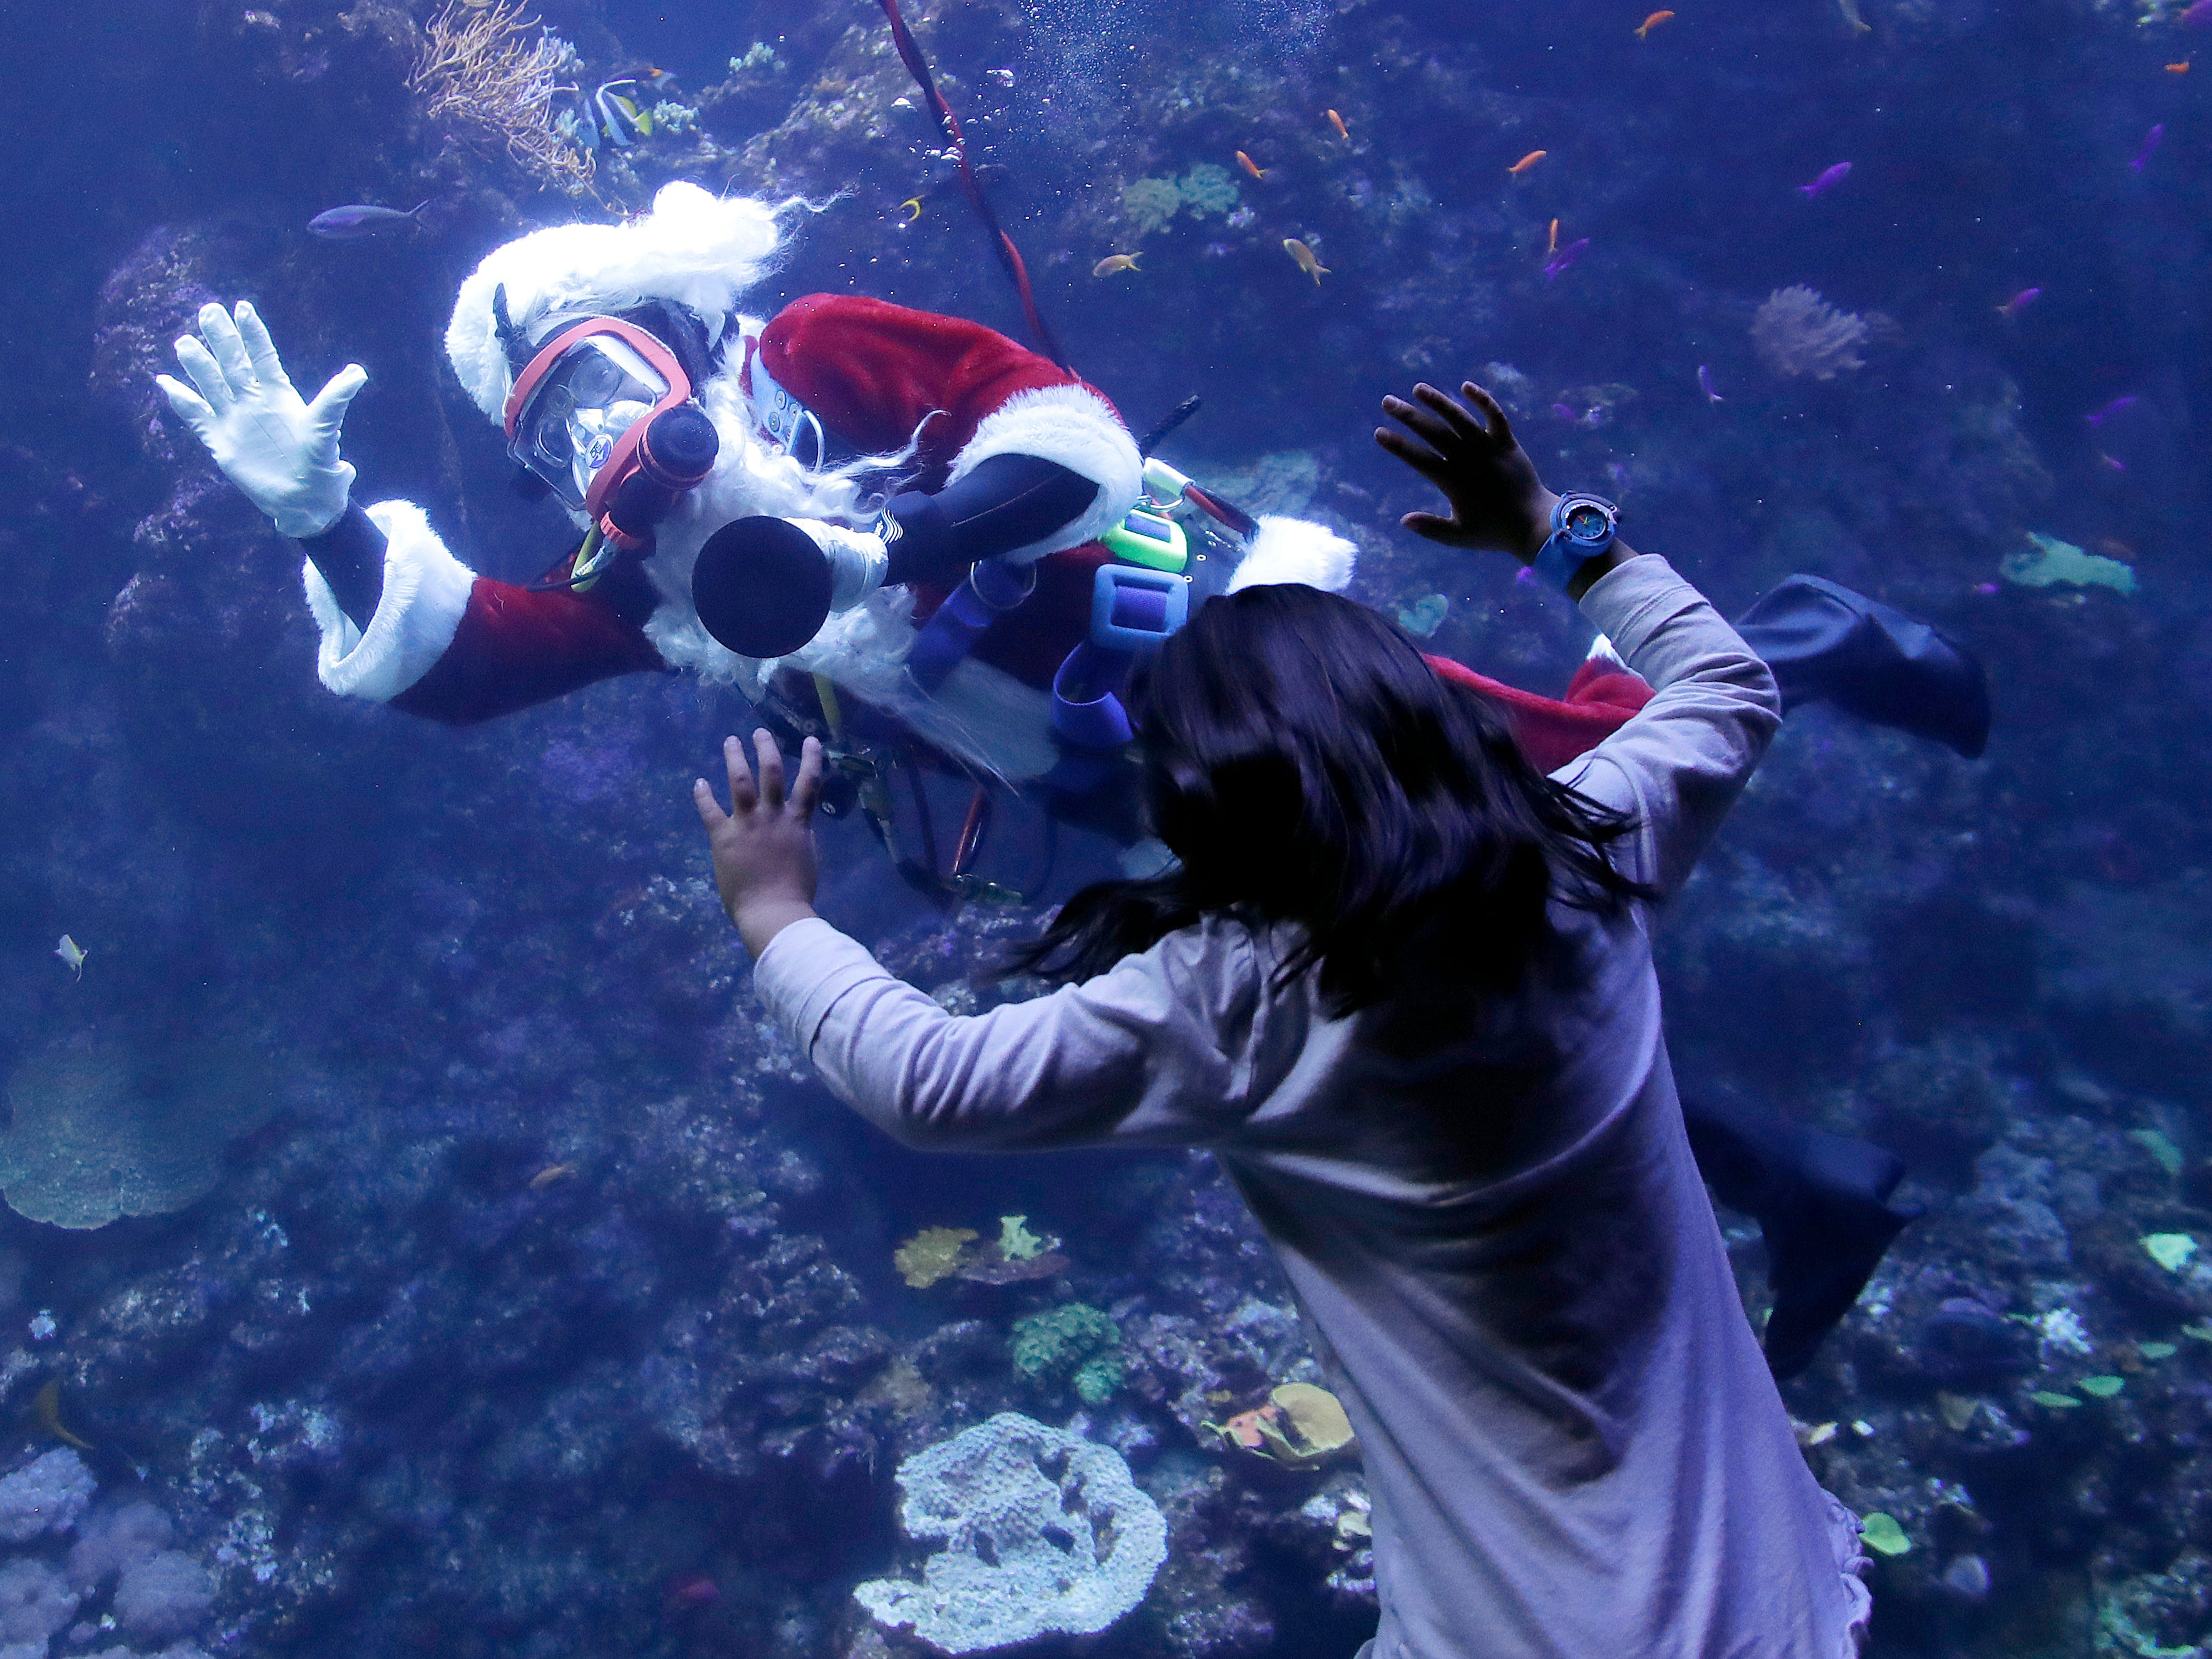 Volunteer diver George Bell, dressed as Santa Claus, waves to visitors to the Philippine Coral Reef tank at The California Academy of Sciences in San Francisco on Dec. 13, 2018.